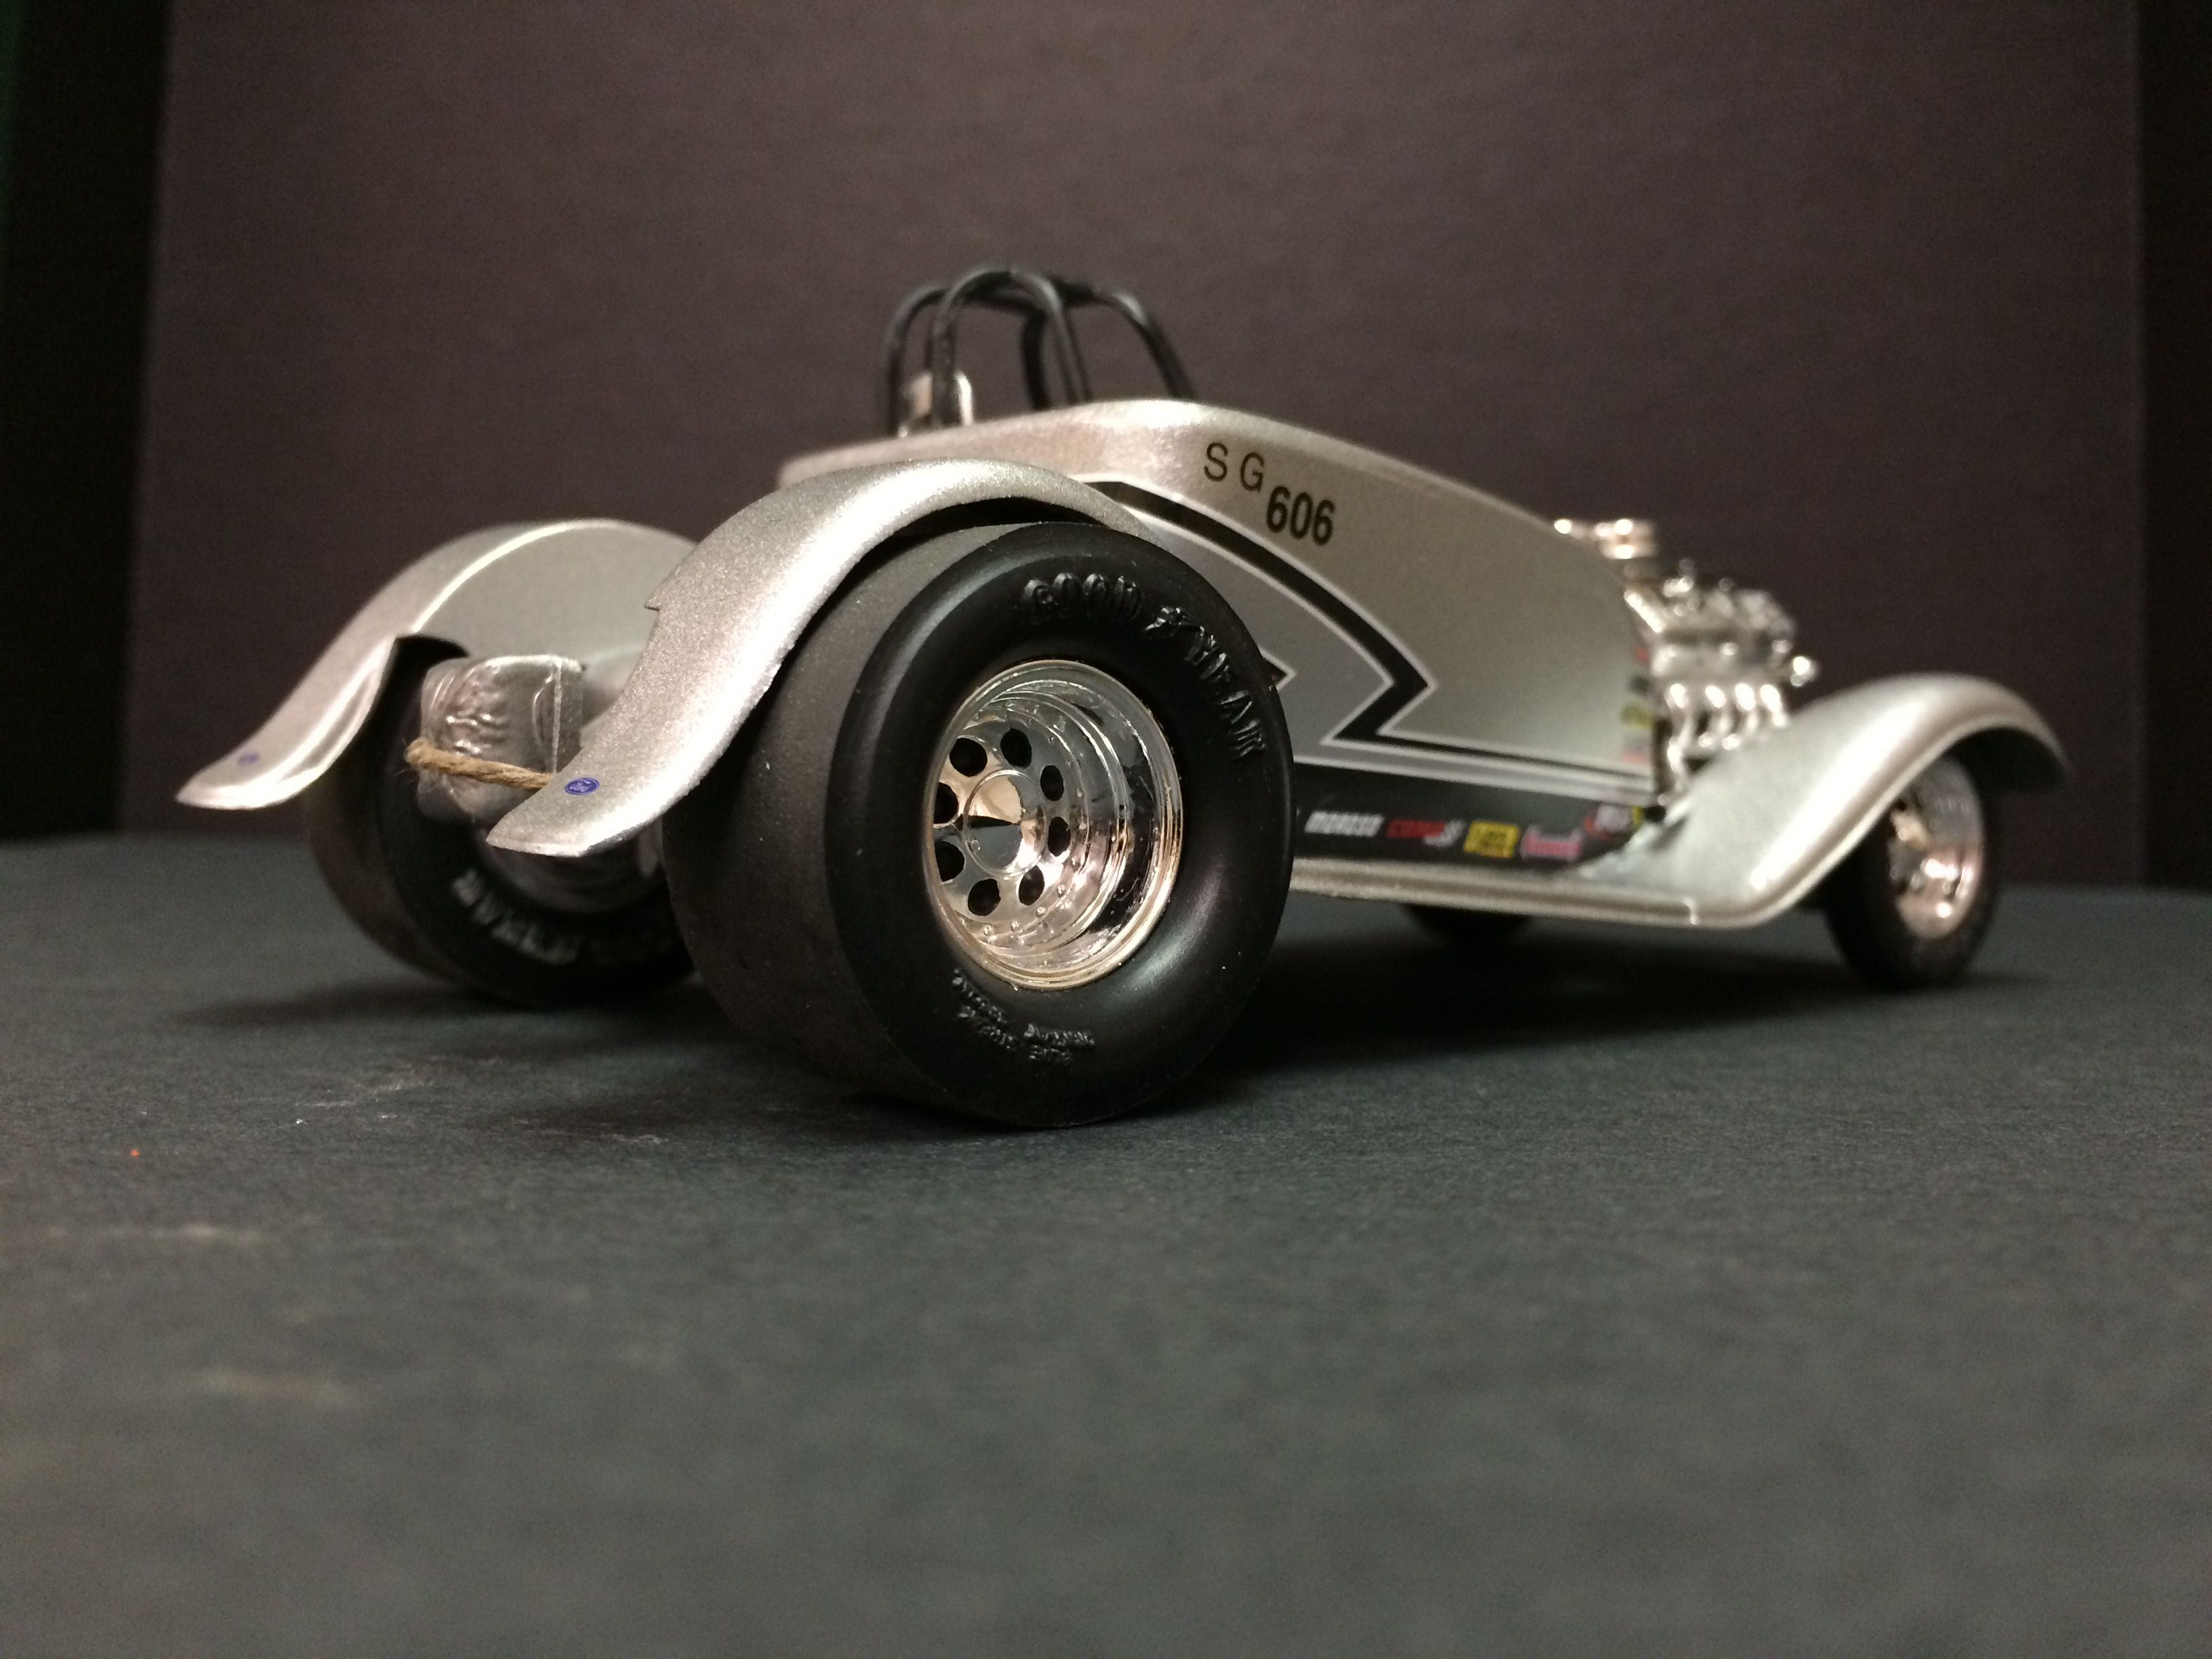 My Wild Child Super Gas Roadster Totally Built From Odds And Ends I Had Collected Over The Past Few Years Scale Models Car Model Model